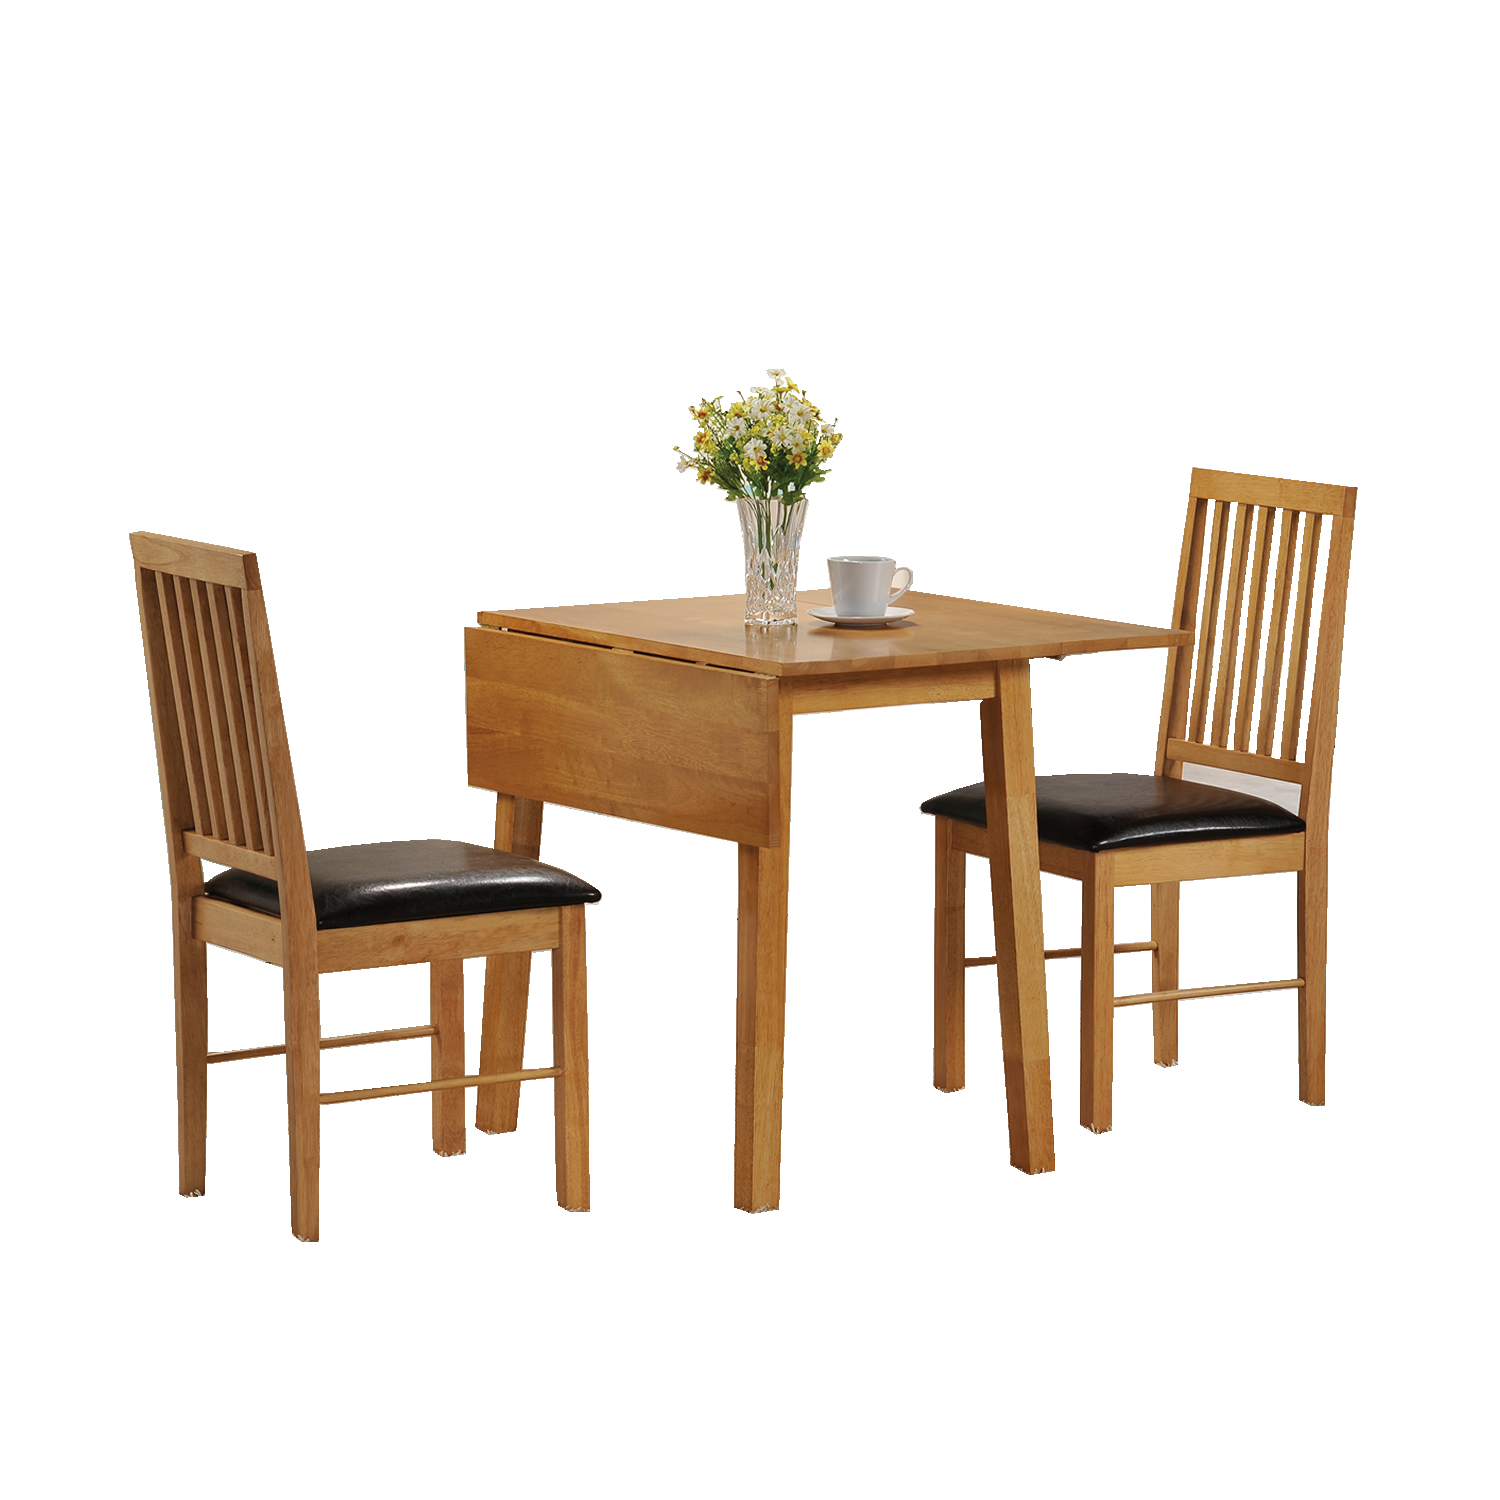 Drop leaf tables for small spaces homesfeed for Flowers for dining room table